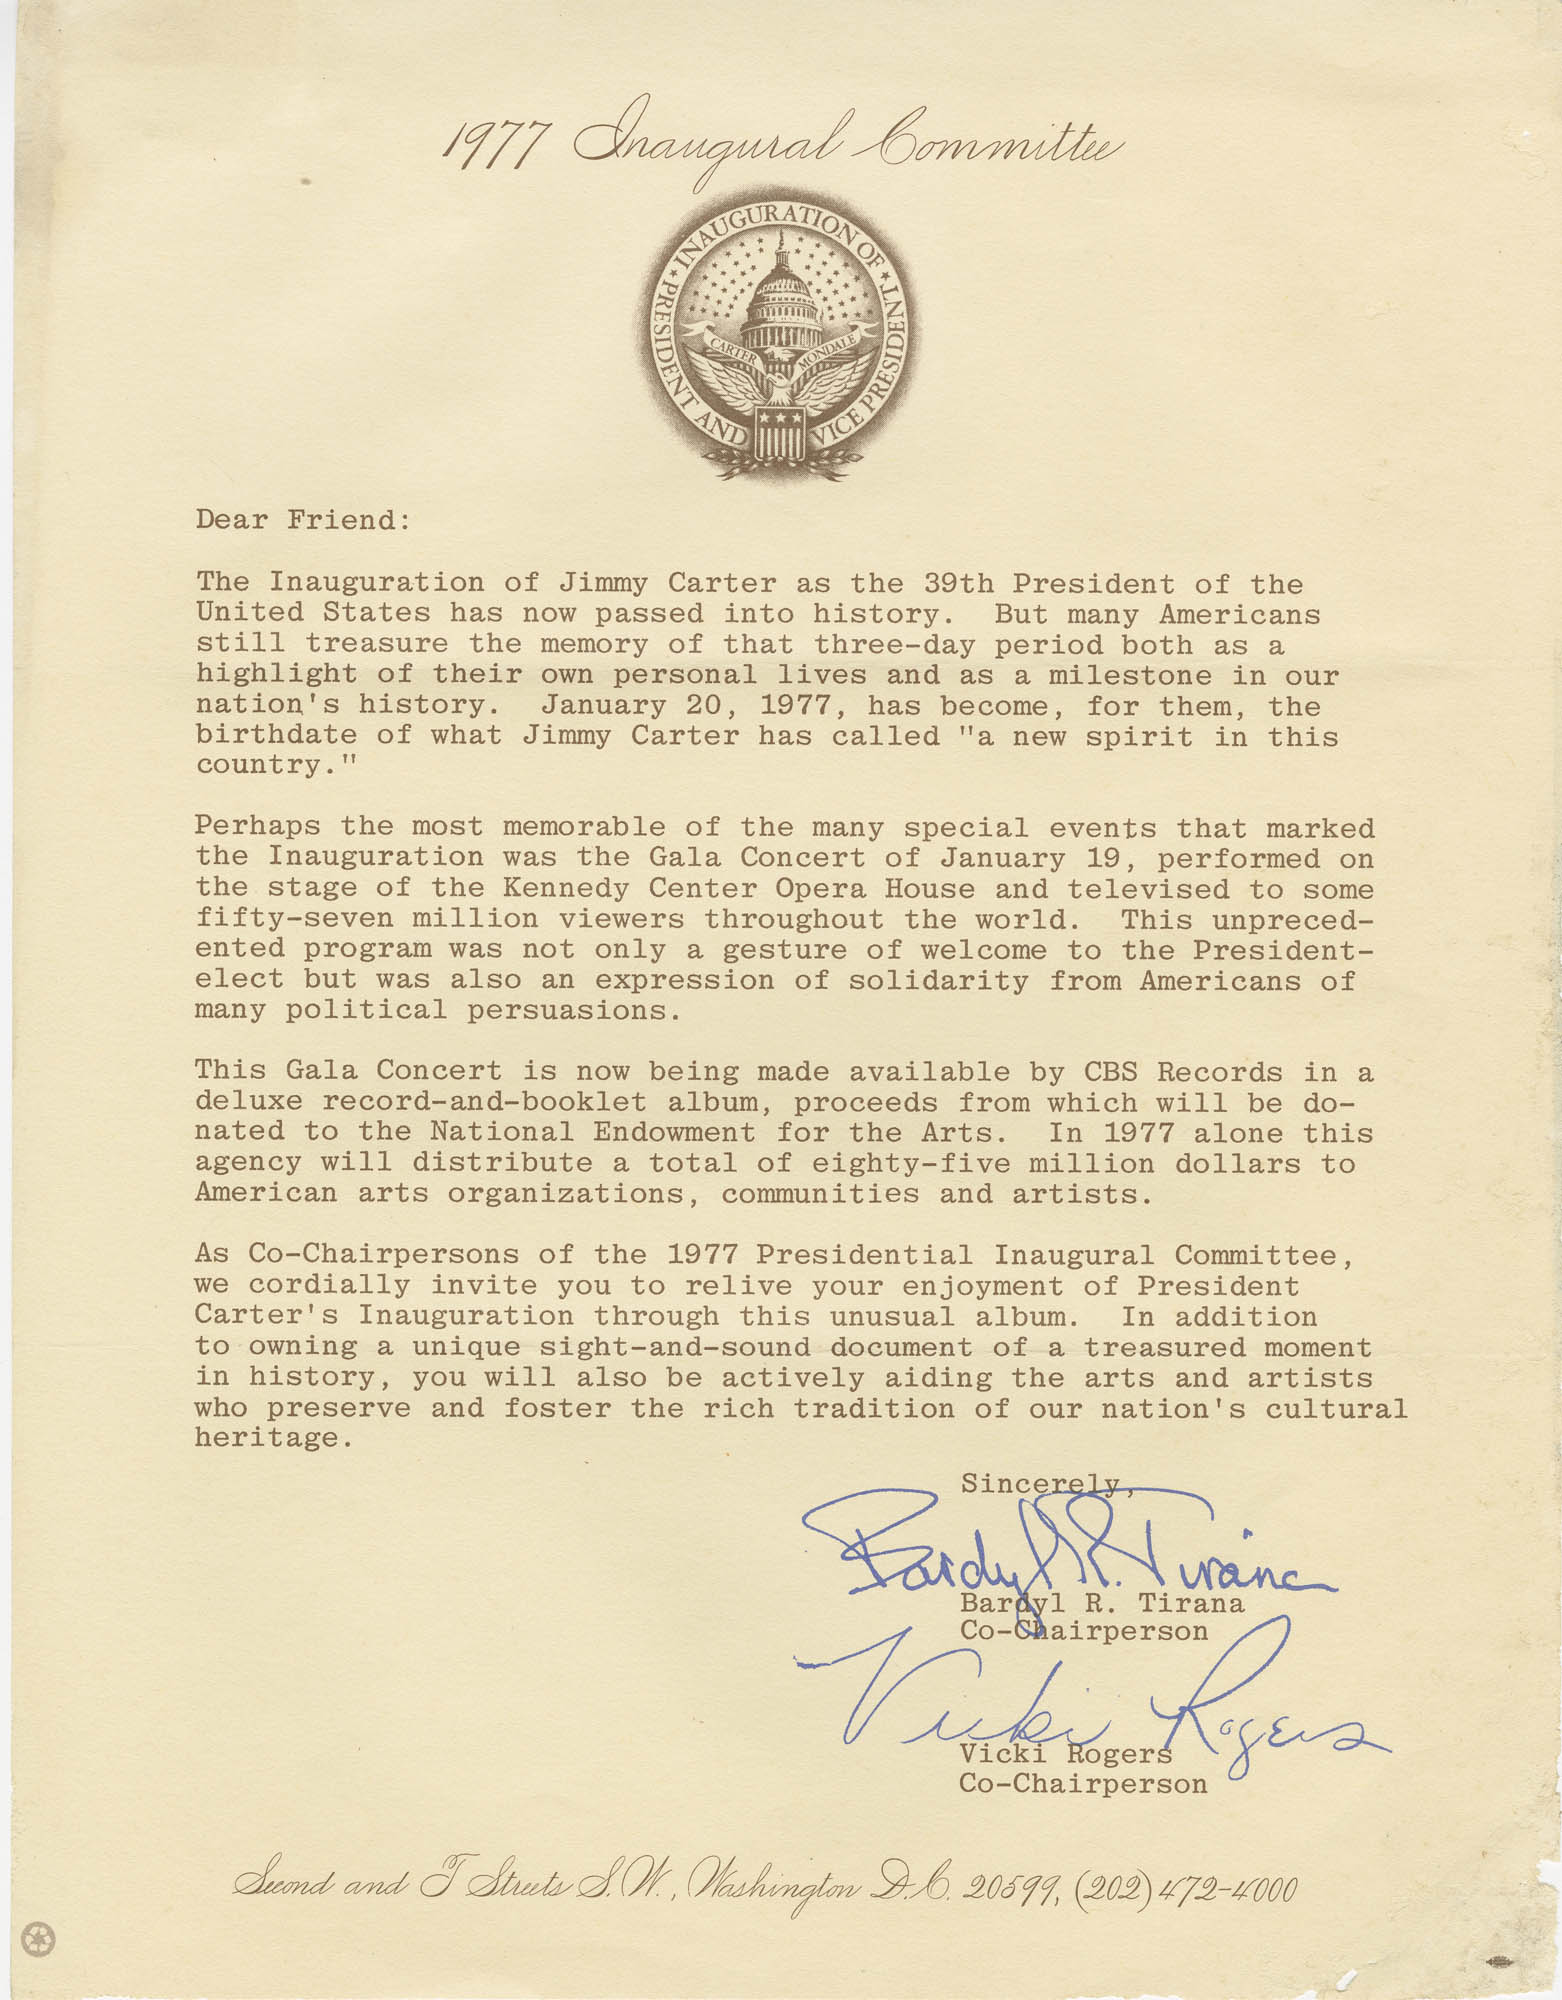 Form letter from 1977 Inaugural Committee to Friend